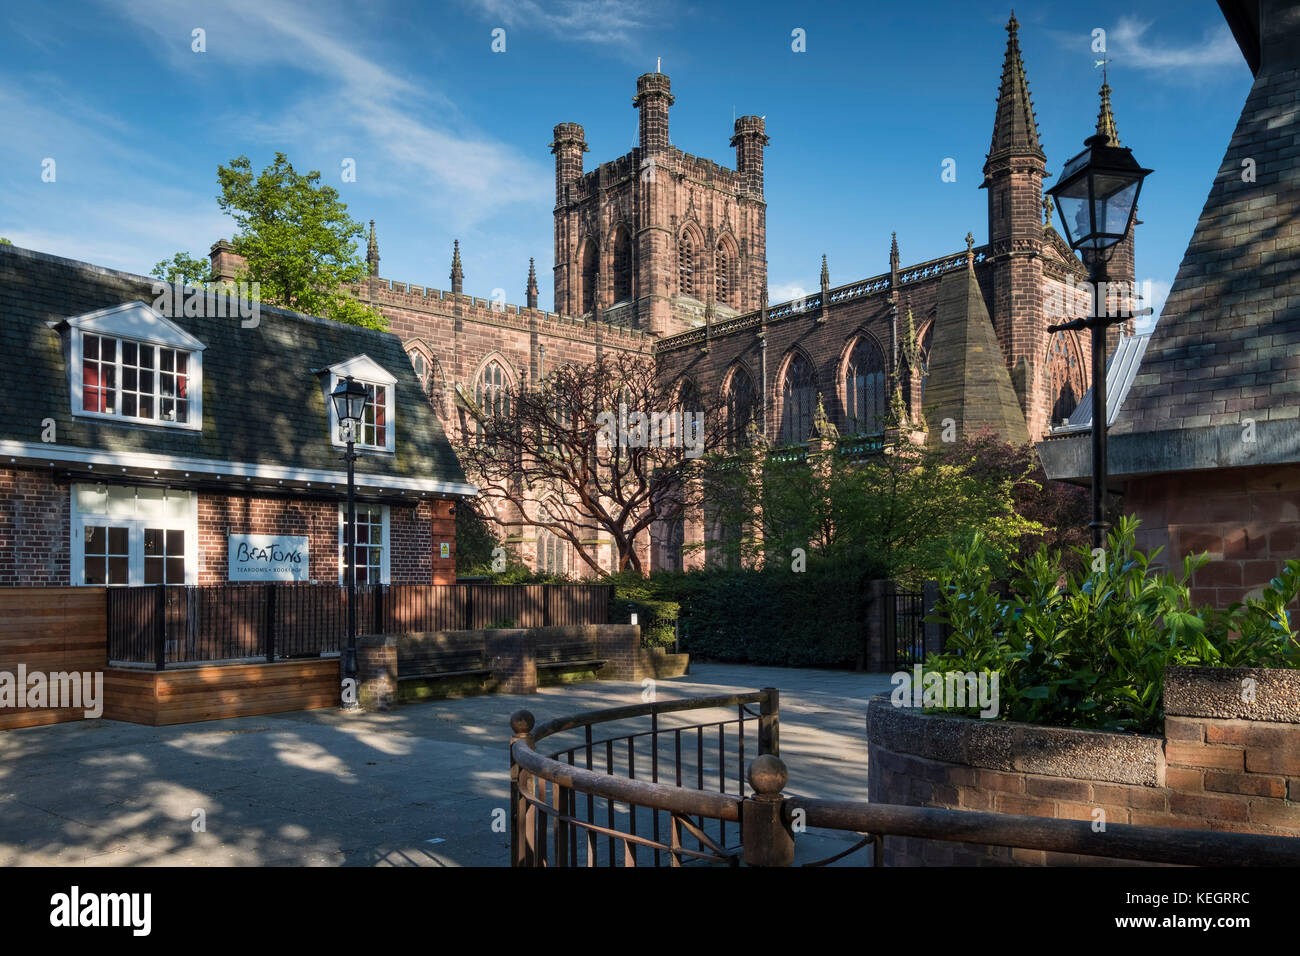 Chester Cathedral and Beatons Tearoom, Chester, Cheshire, England, UK - Stock Image